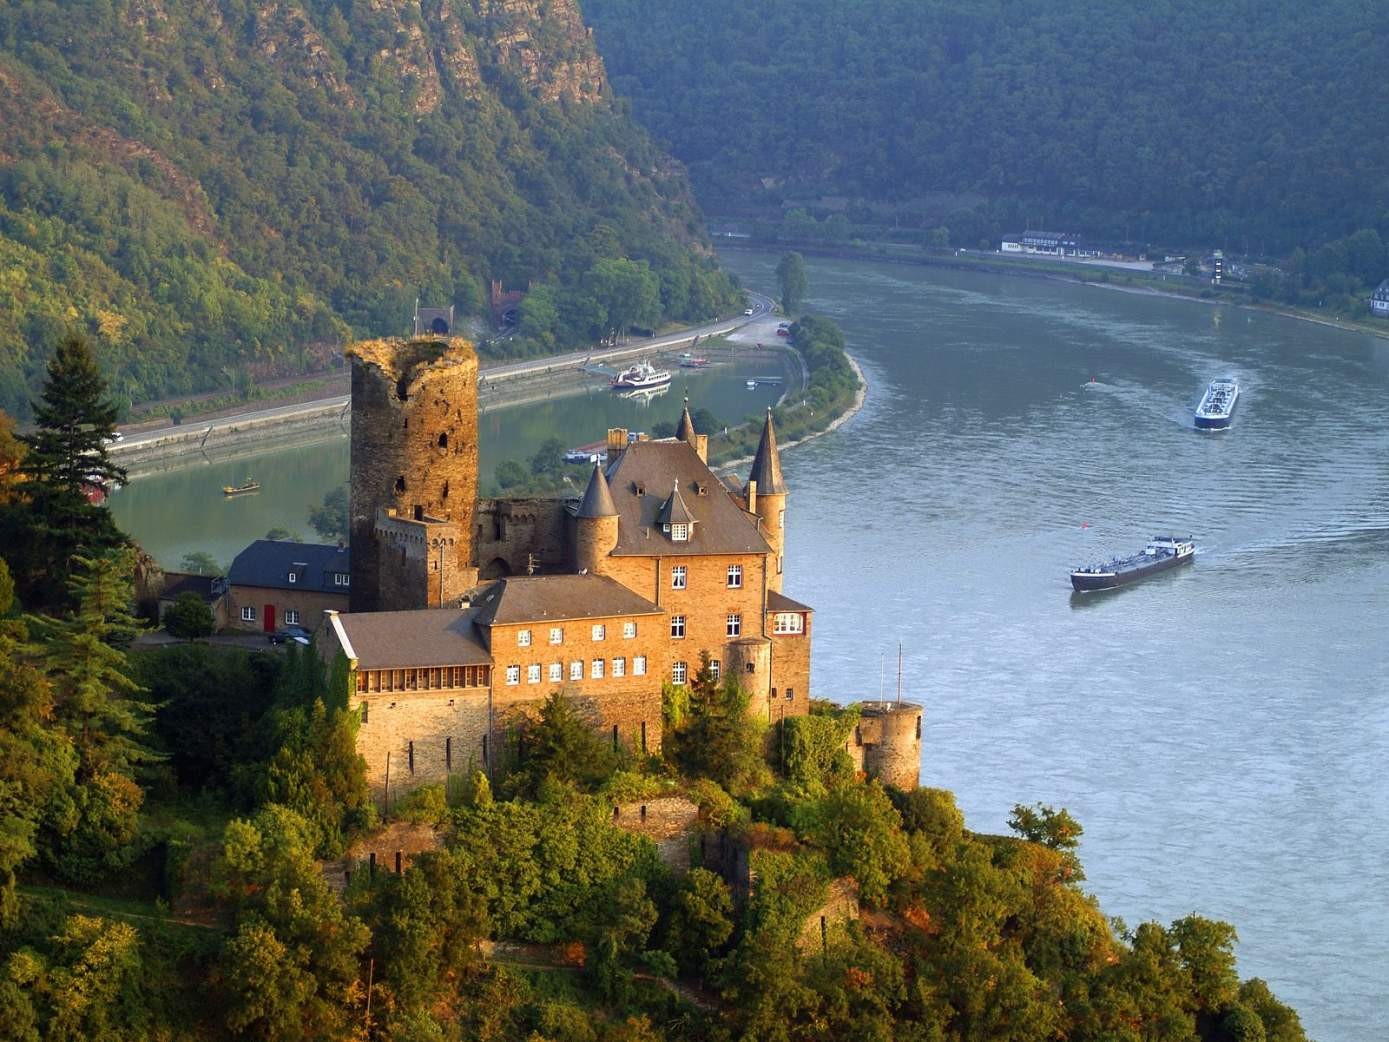 Cruise down the River Rhine